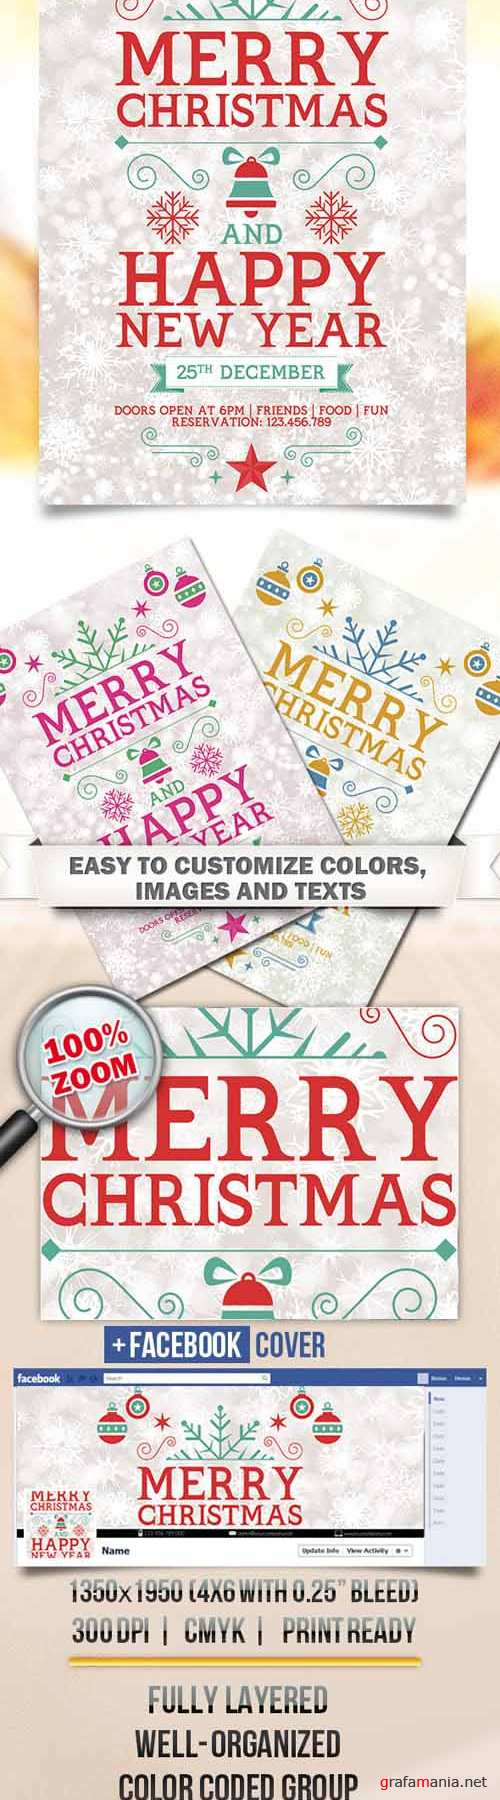 Flyer PSD Template - Merry Merry Christmas + Facebook Cover